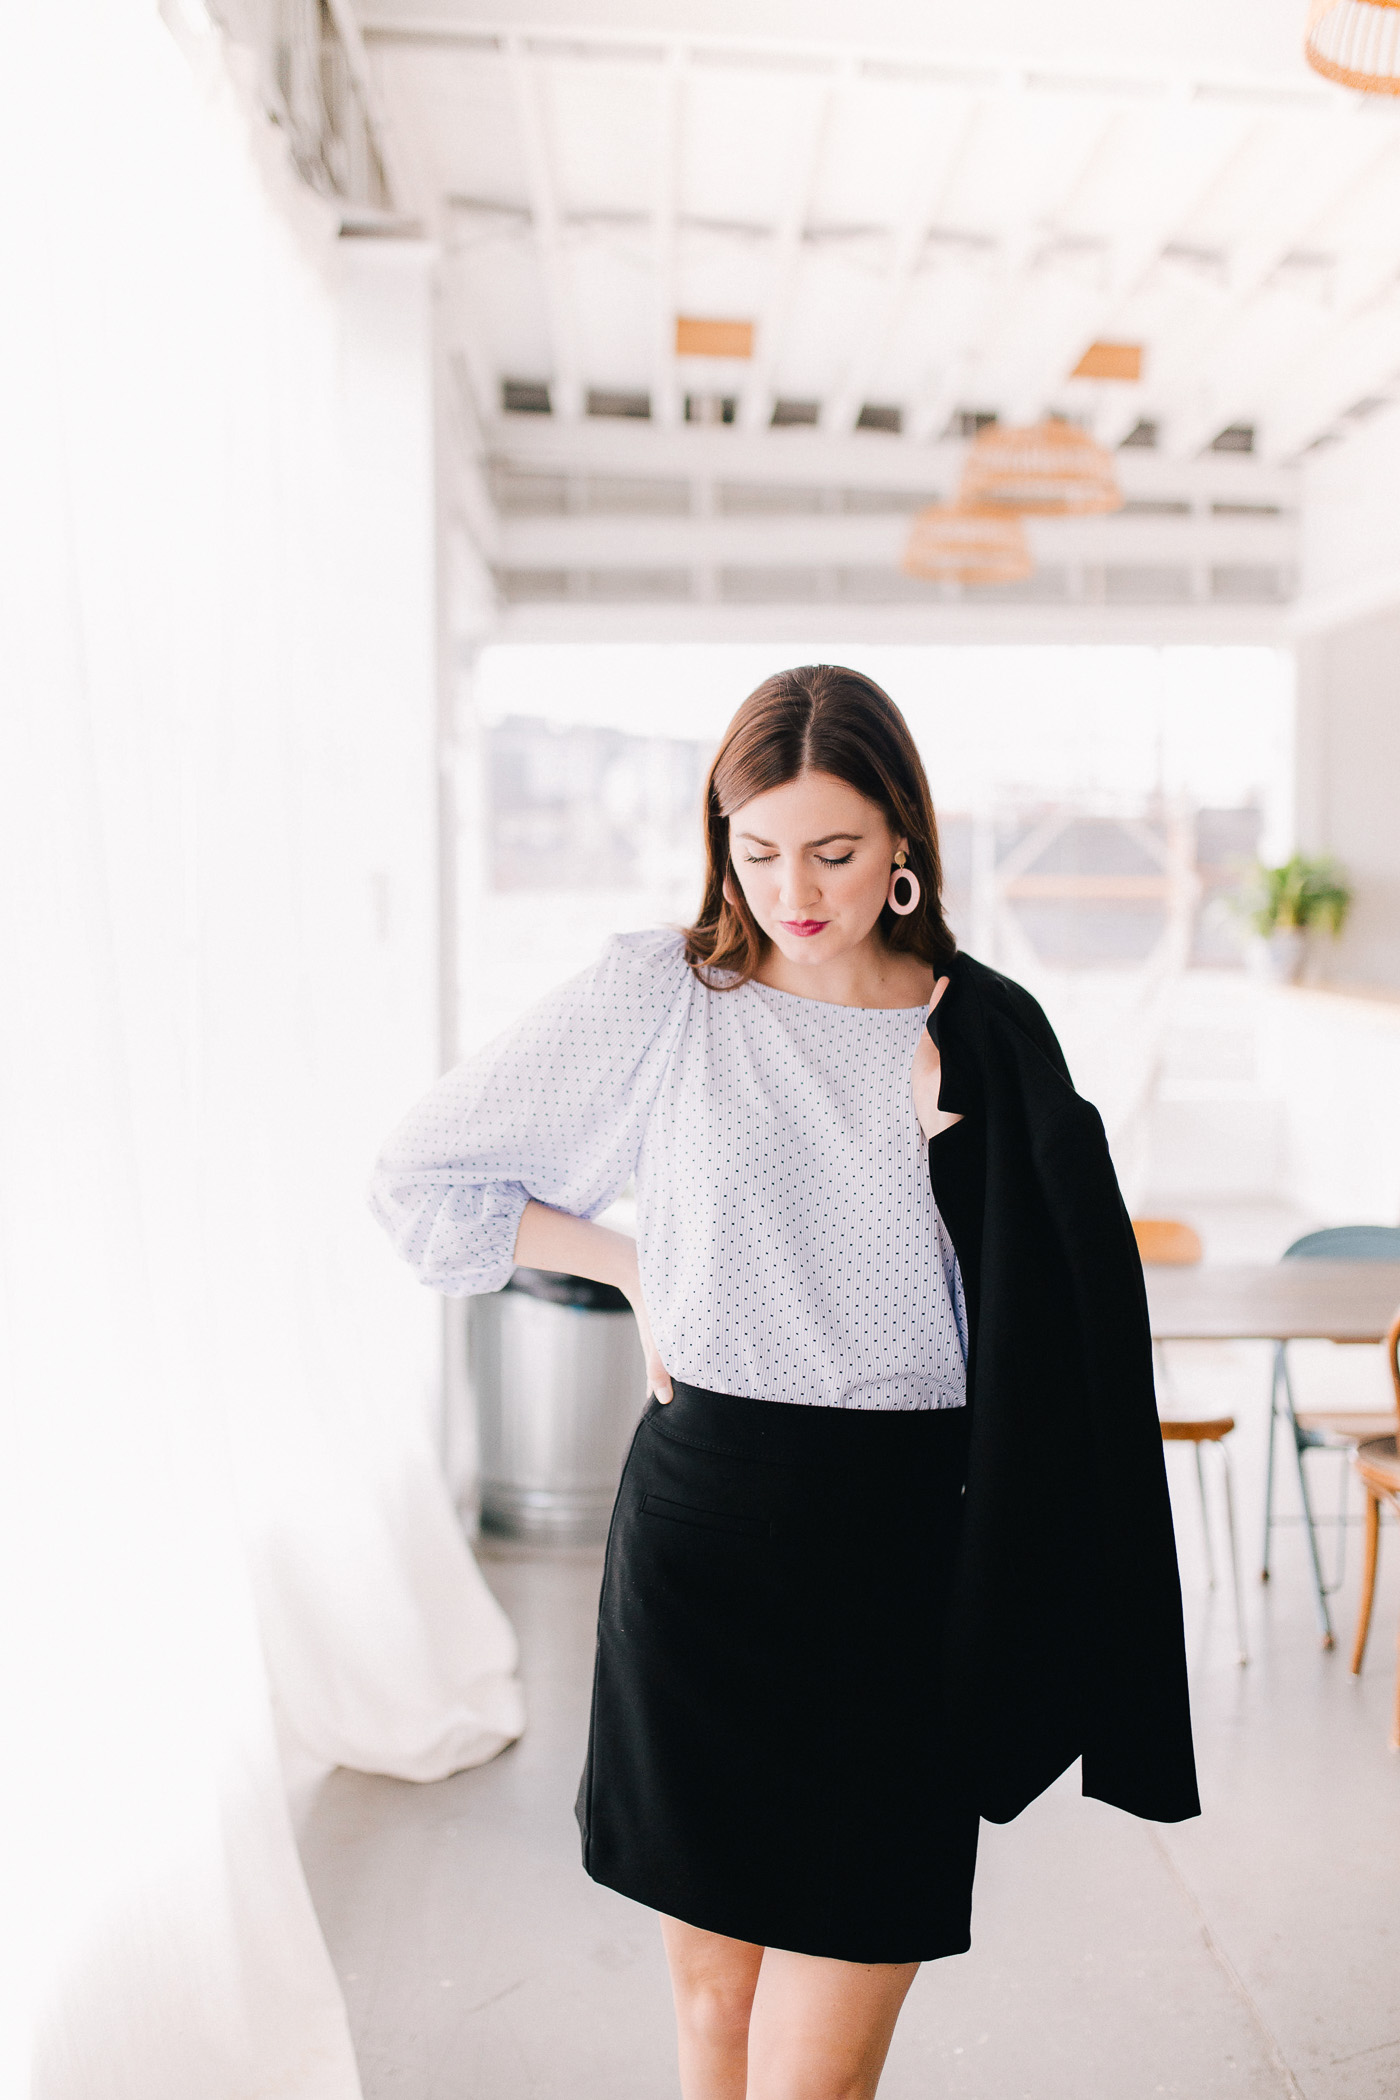 A roundup of ten LOFT workwear essentials to help you create your own unique work style by Lauren Cermak of the Southern lifestyle blog, Going For Grace.